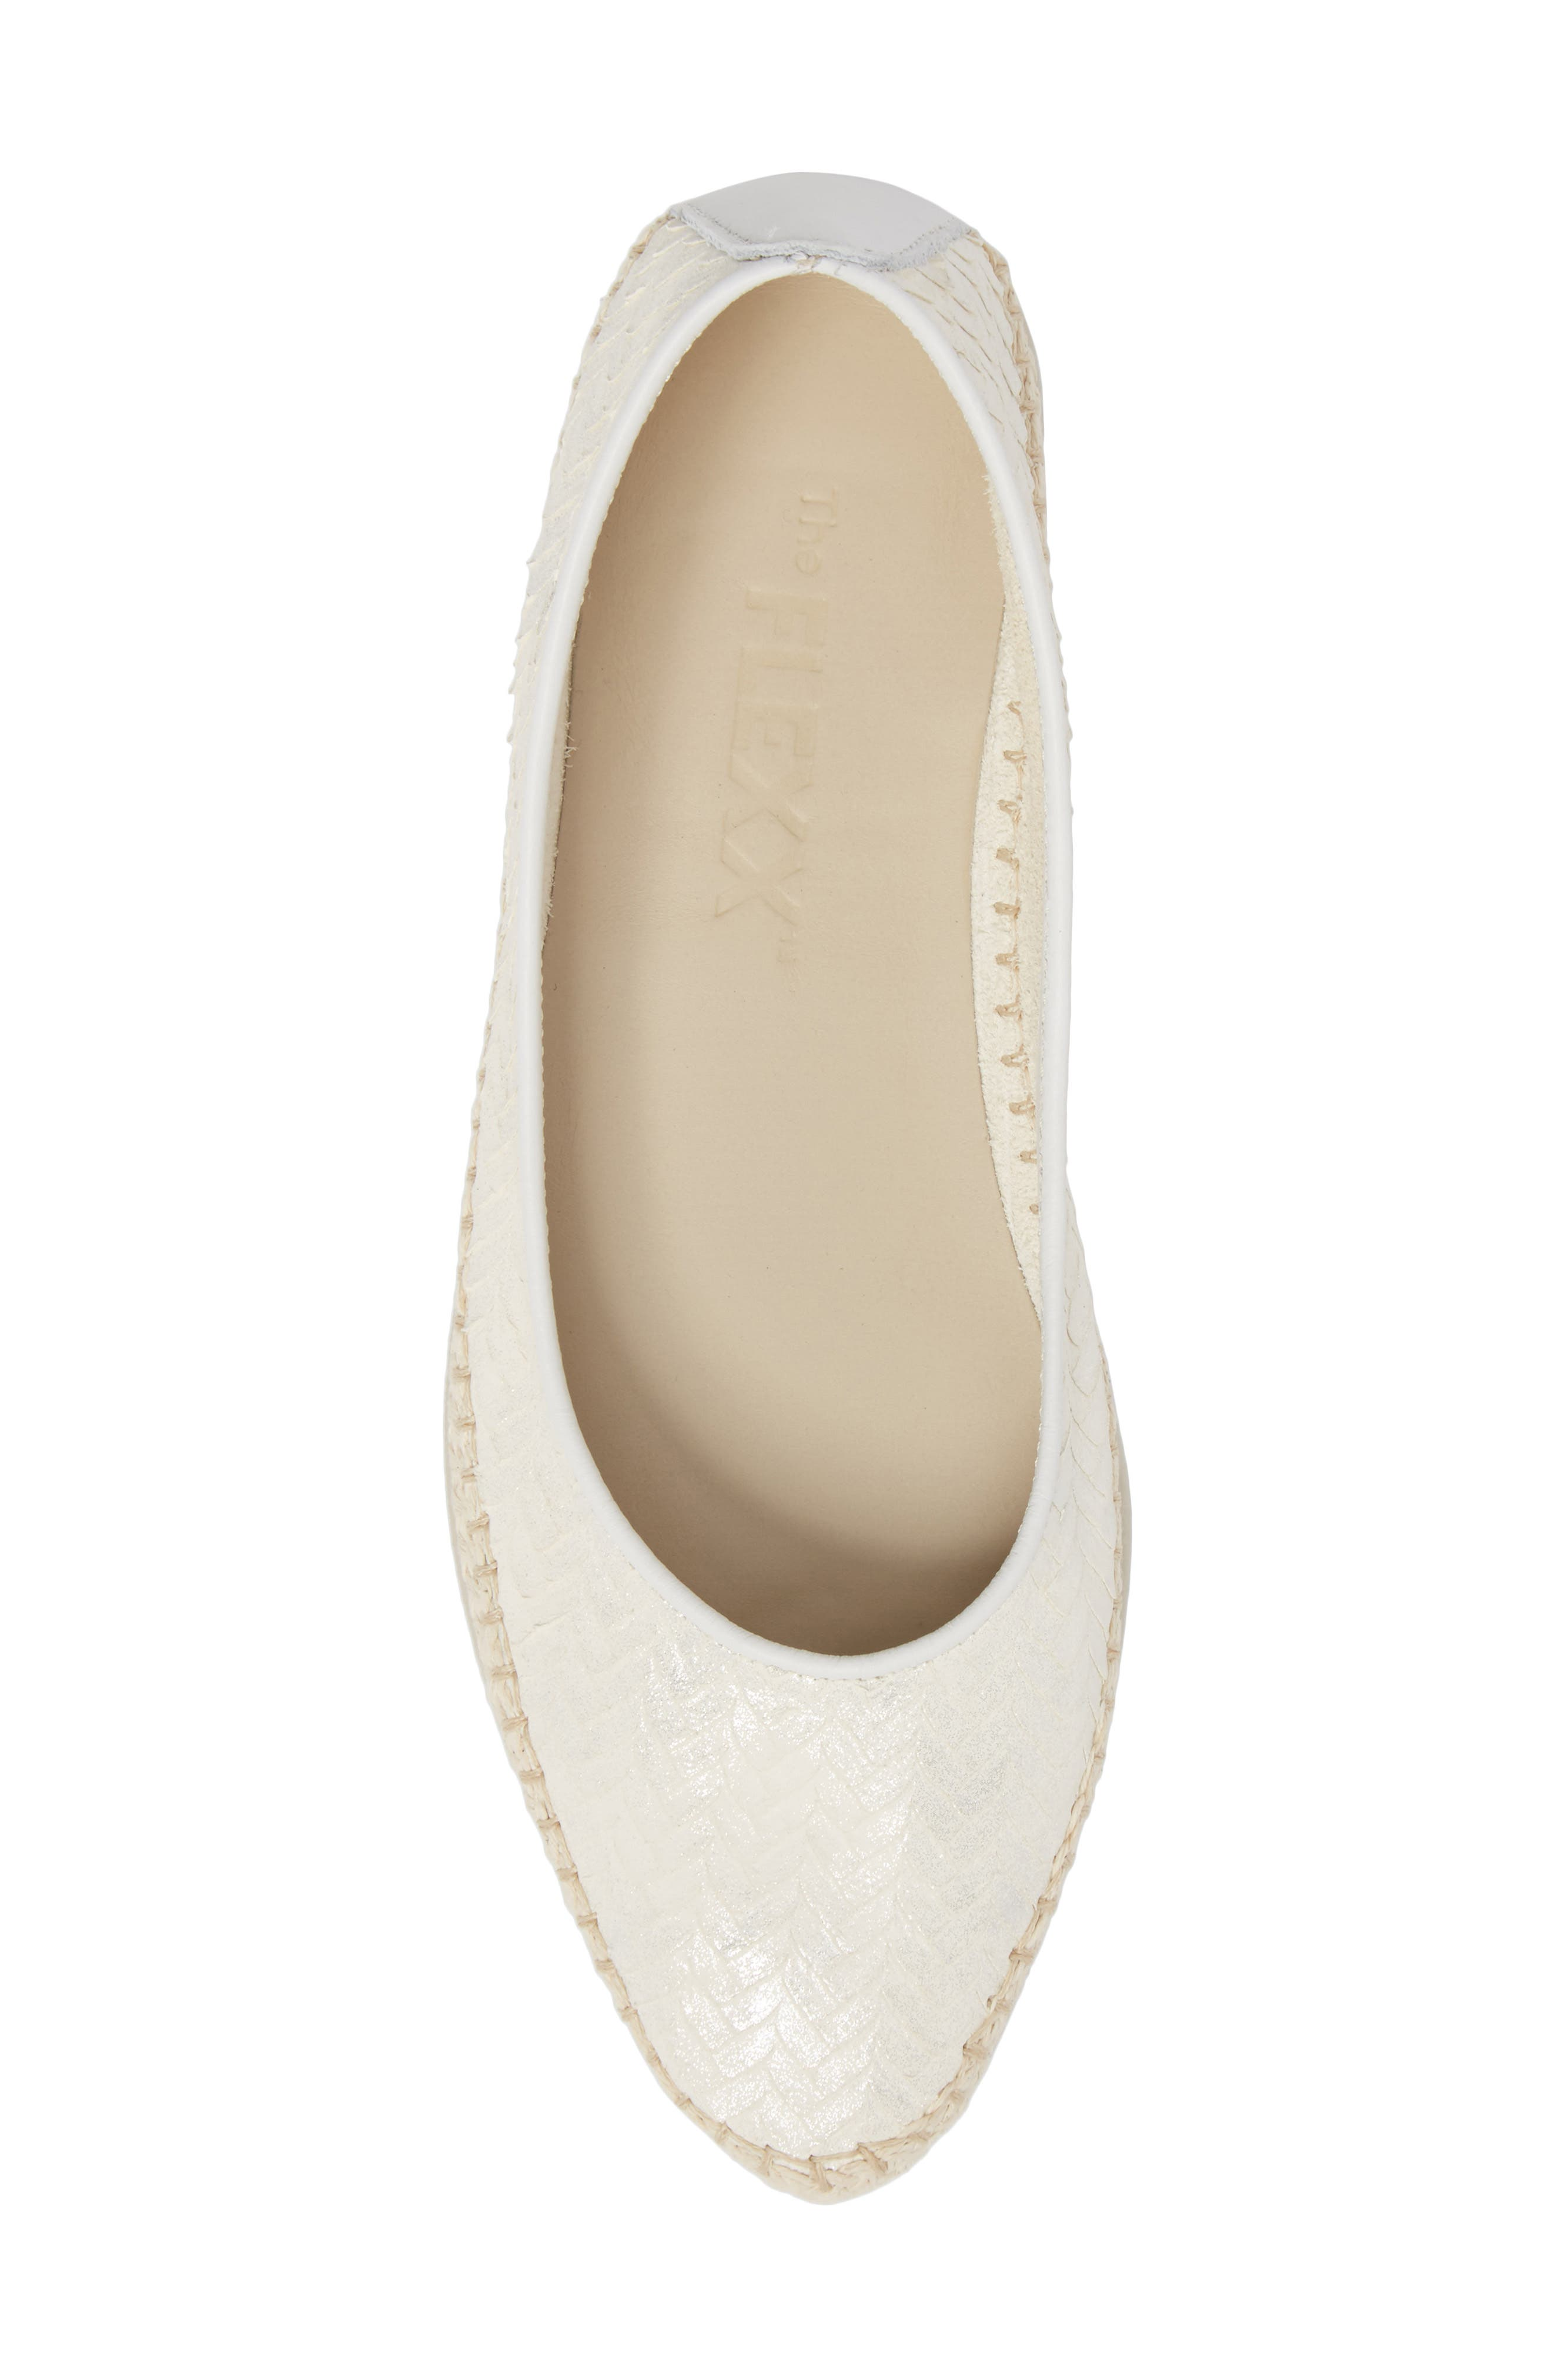 'Torri' Perforated Espadrille Flat,                             Alternate thumbnail 4, color,                             Pearl Leather